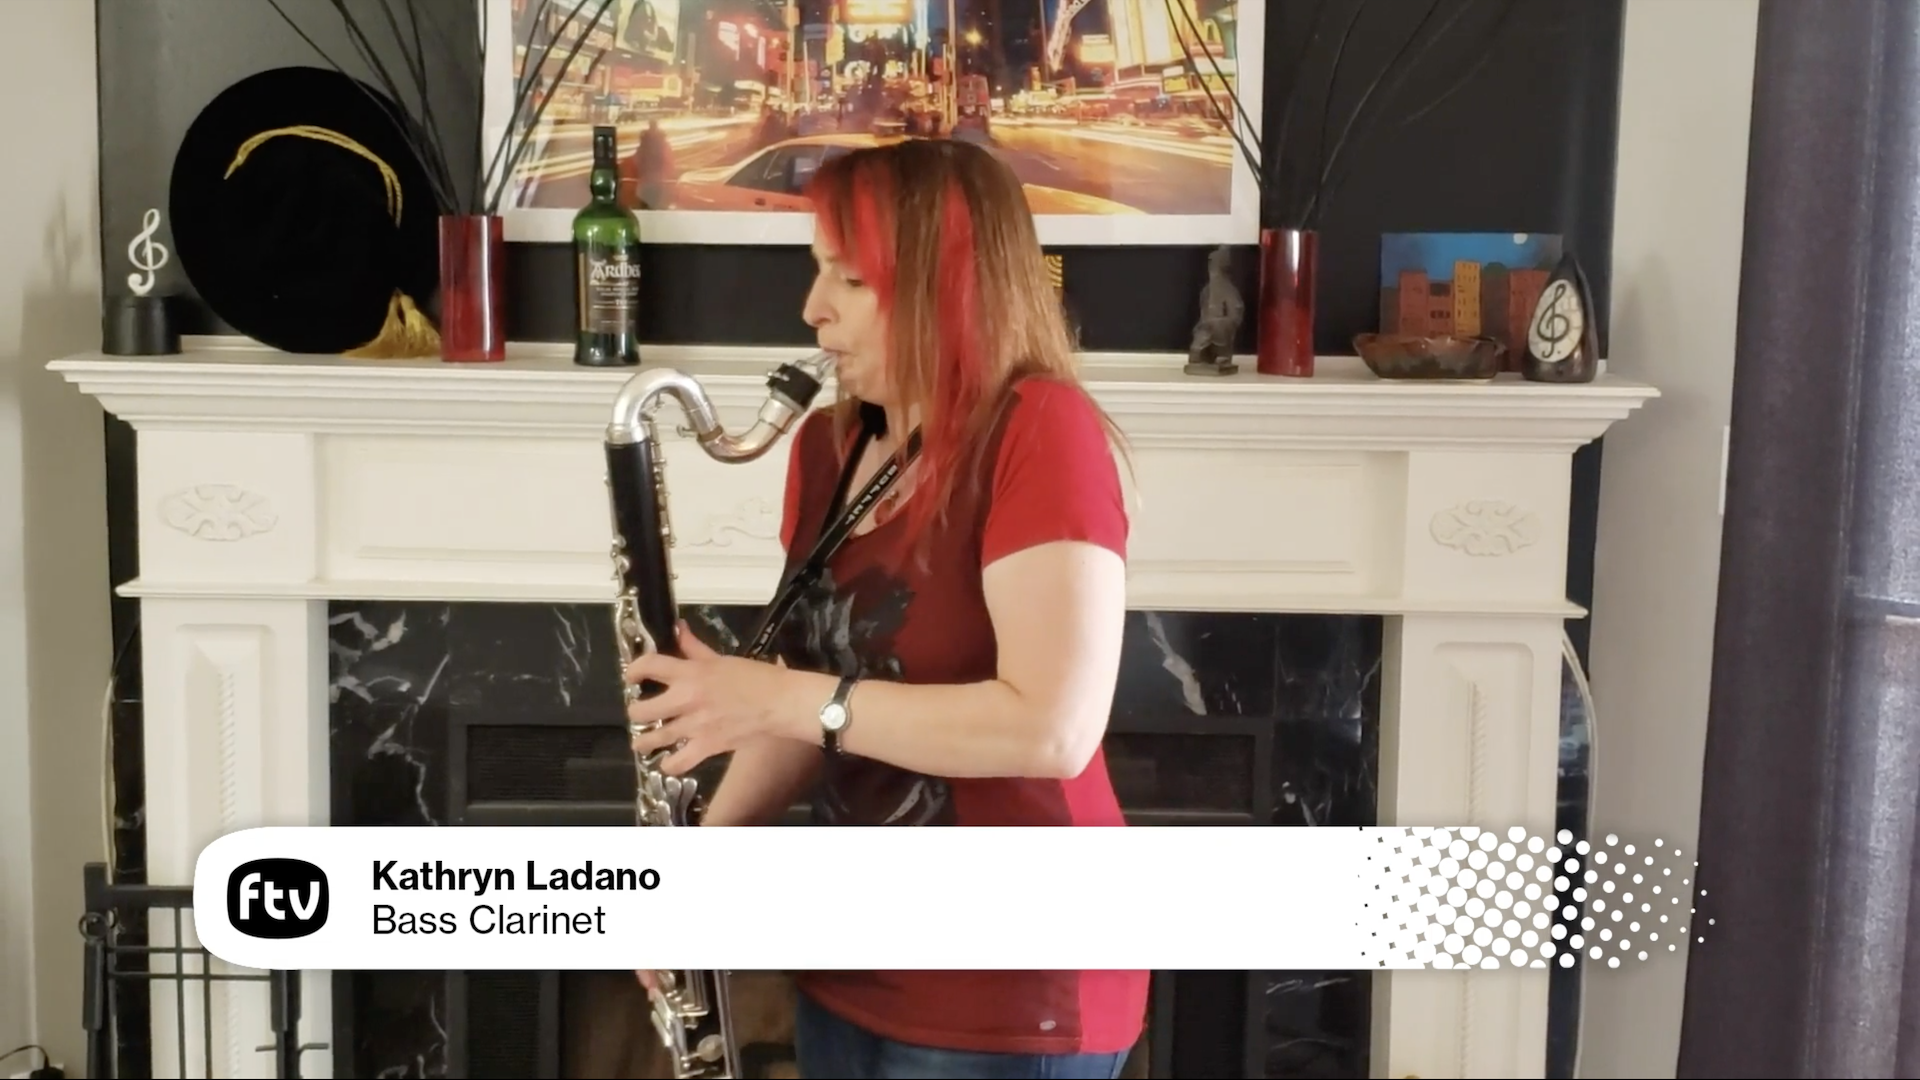 Kathryn Ladano plays bass clarinet